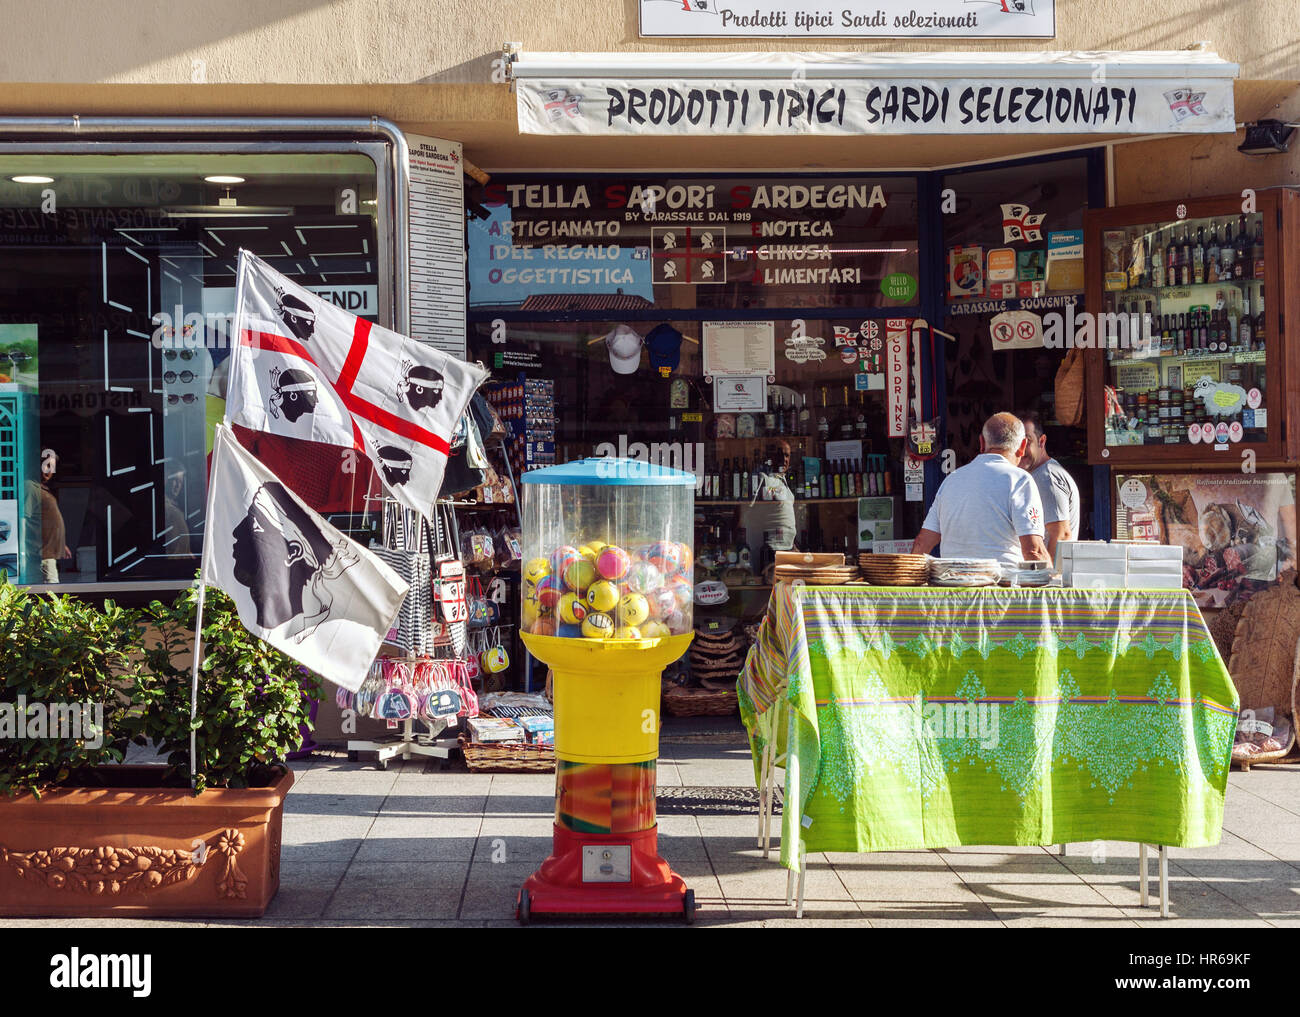 Front outdoor view of typical grocery and souvenir shop in Sardinia, Italy - Stock Image